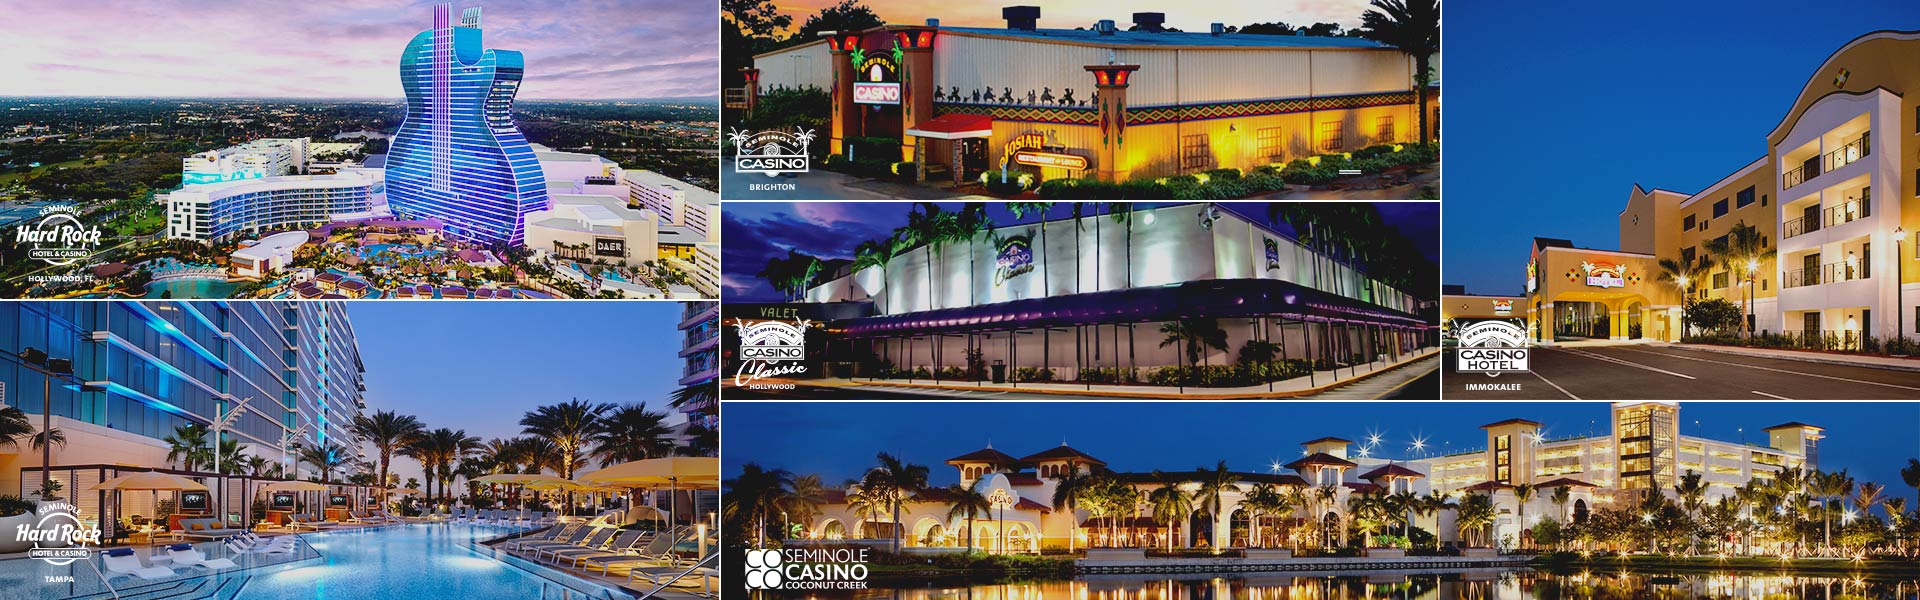 Seminole Casino Locations